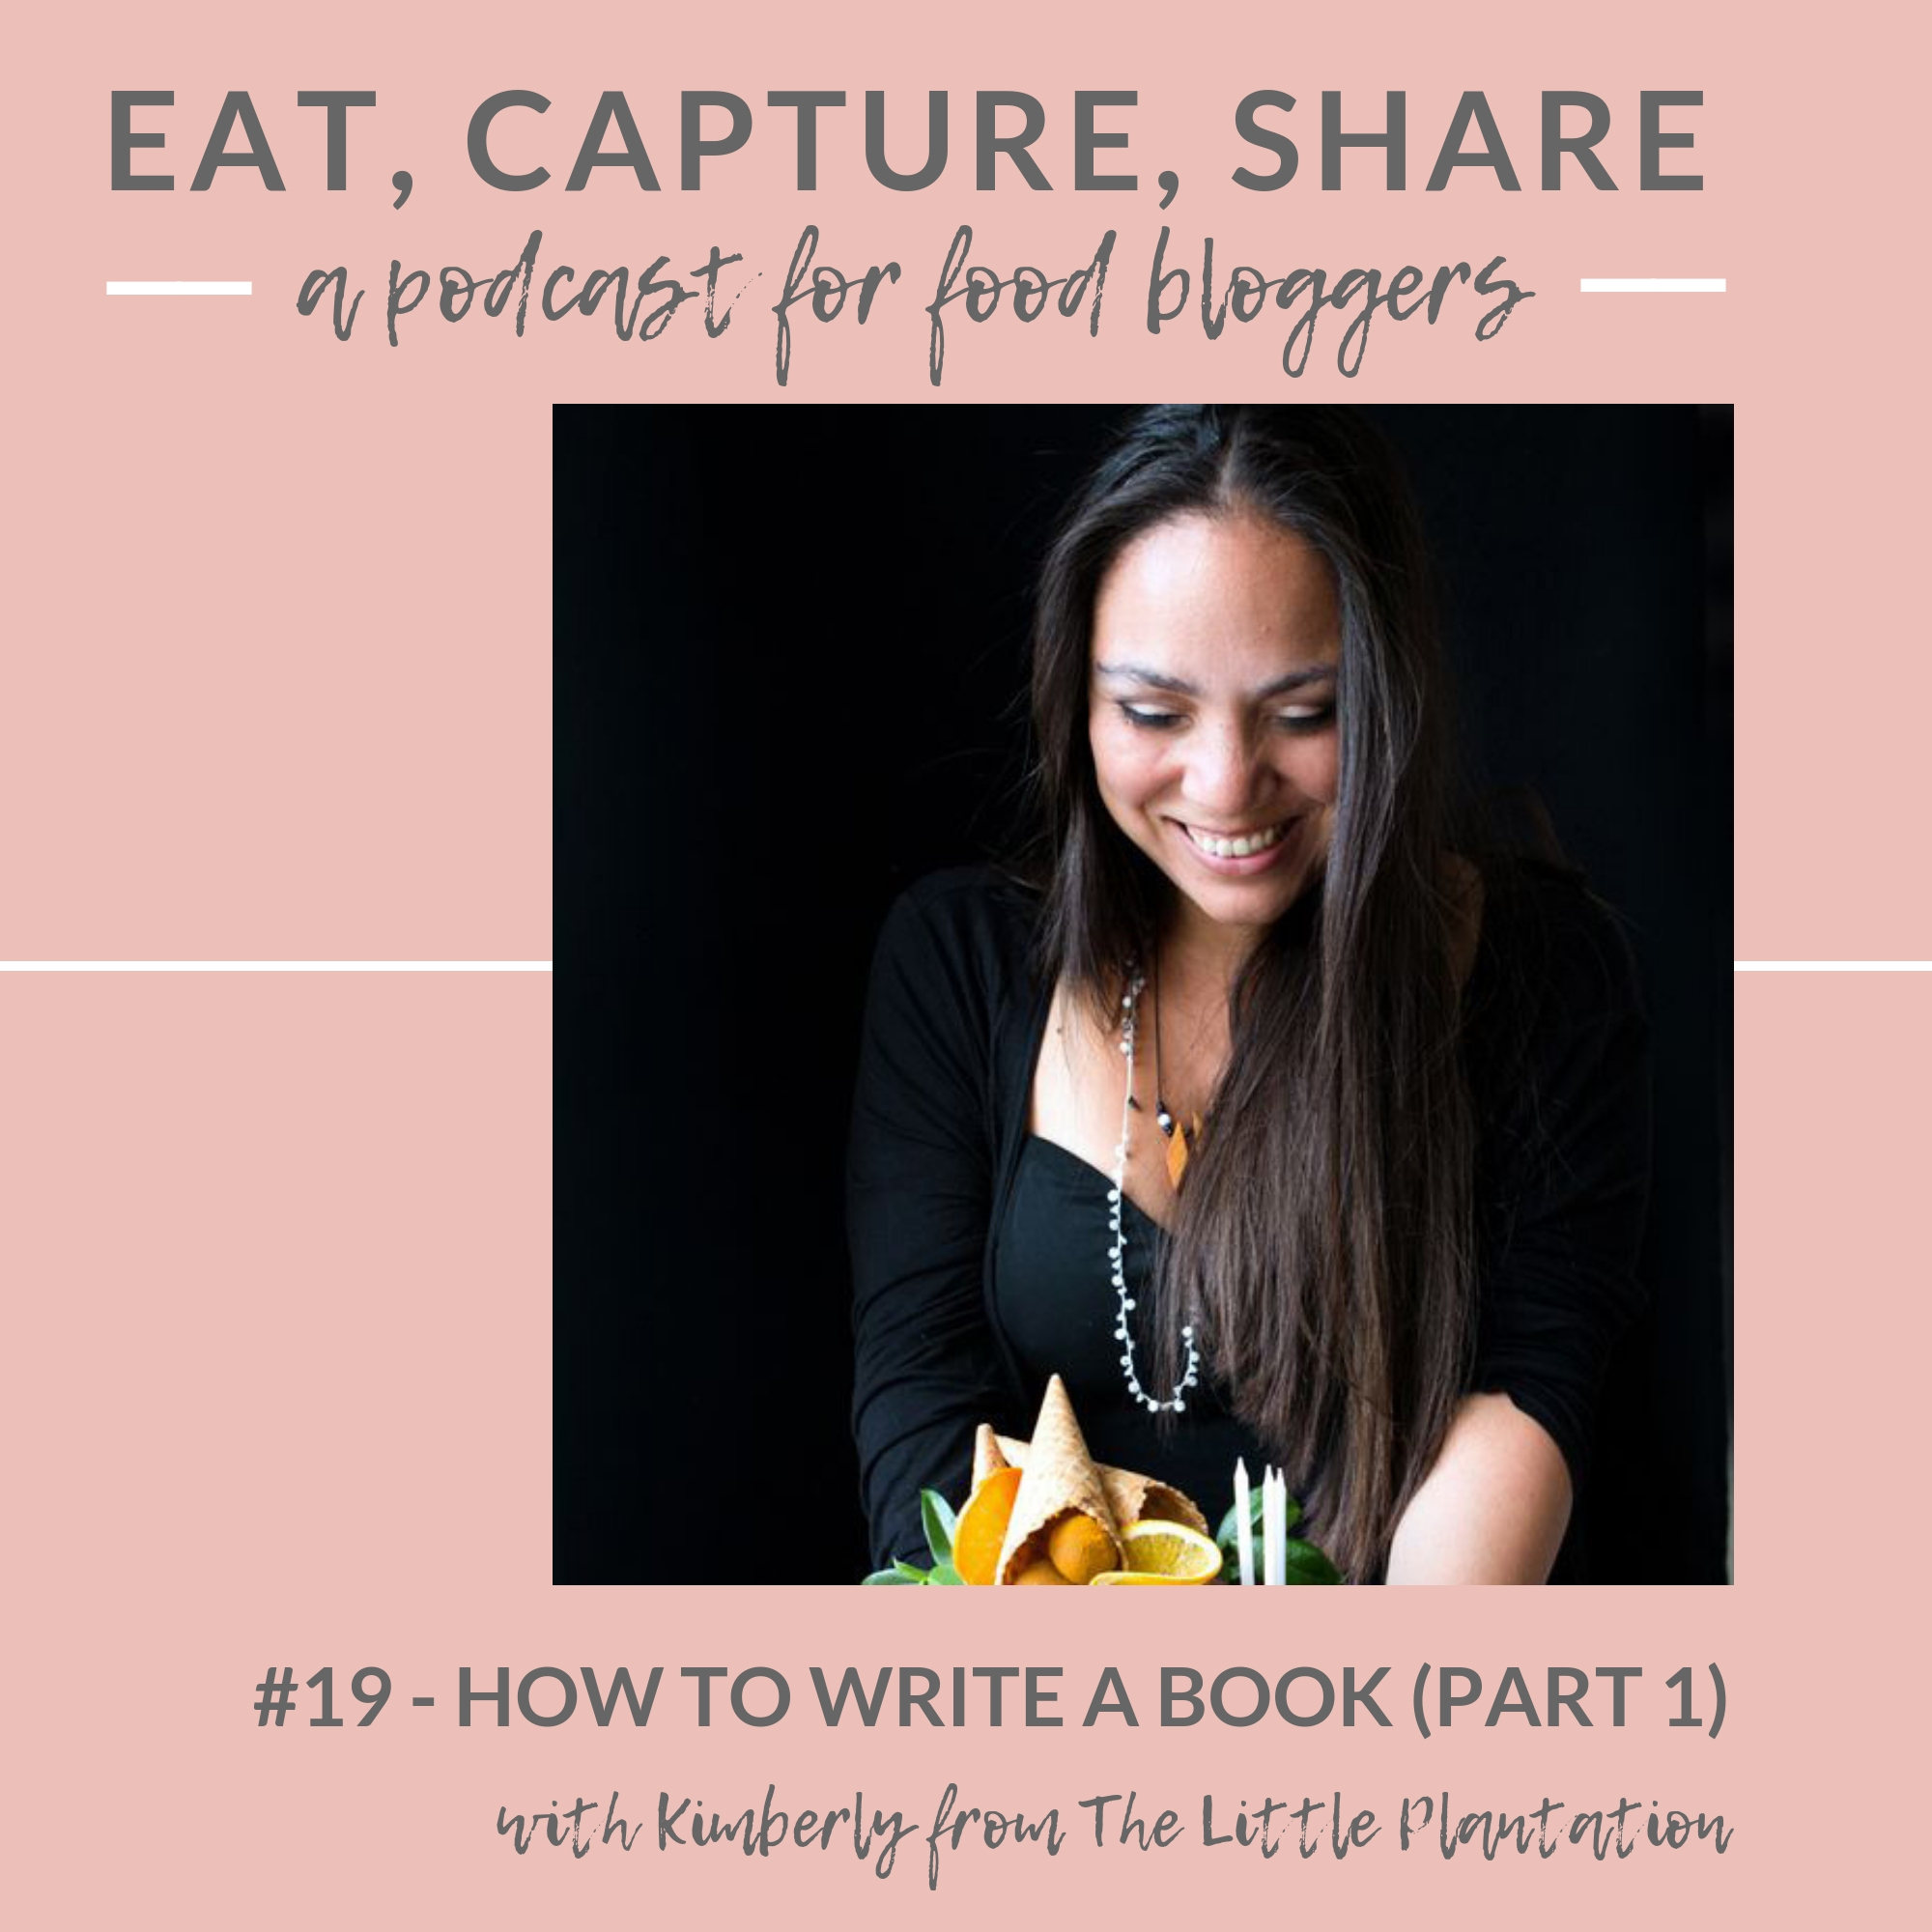 How to write a book proposal, 5 tips - Eat, Capture, Share podcast for food bloggers with Kimberly of the Little Plantation